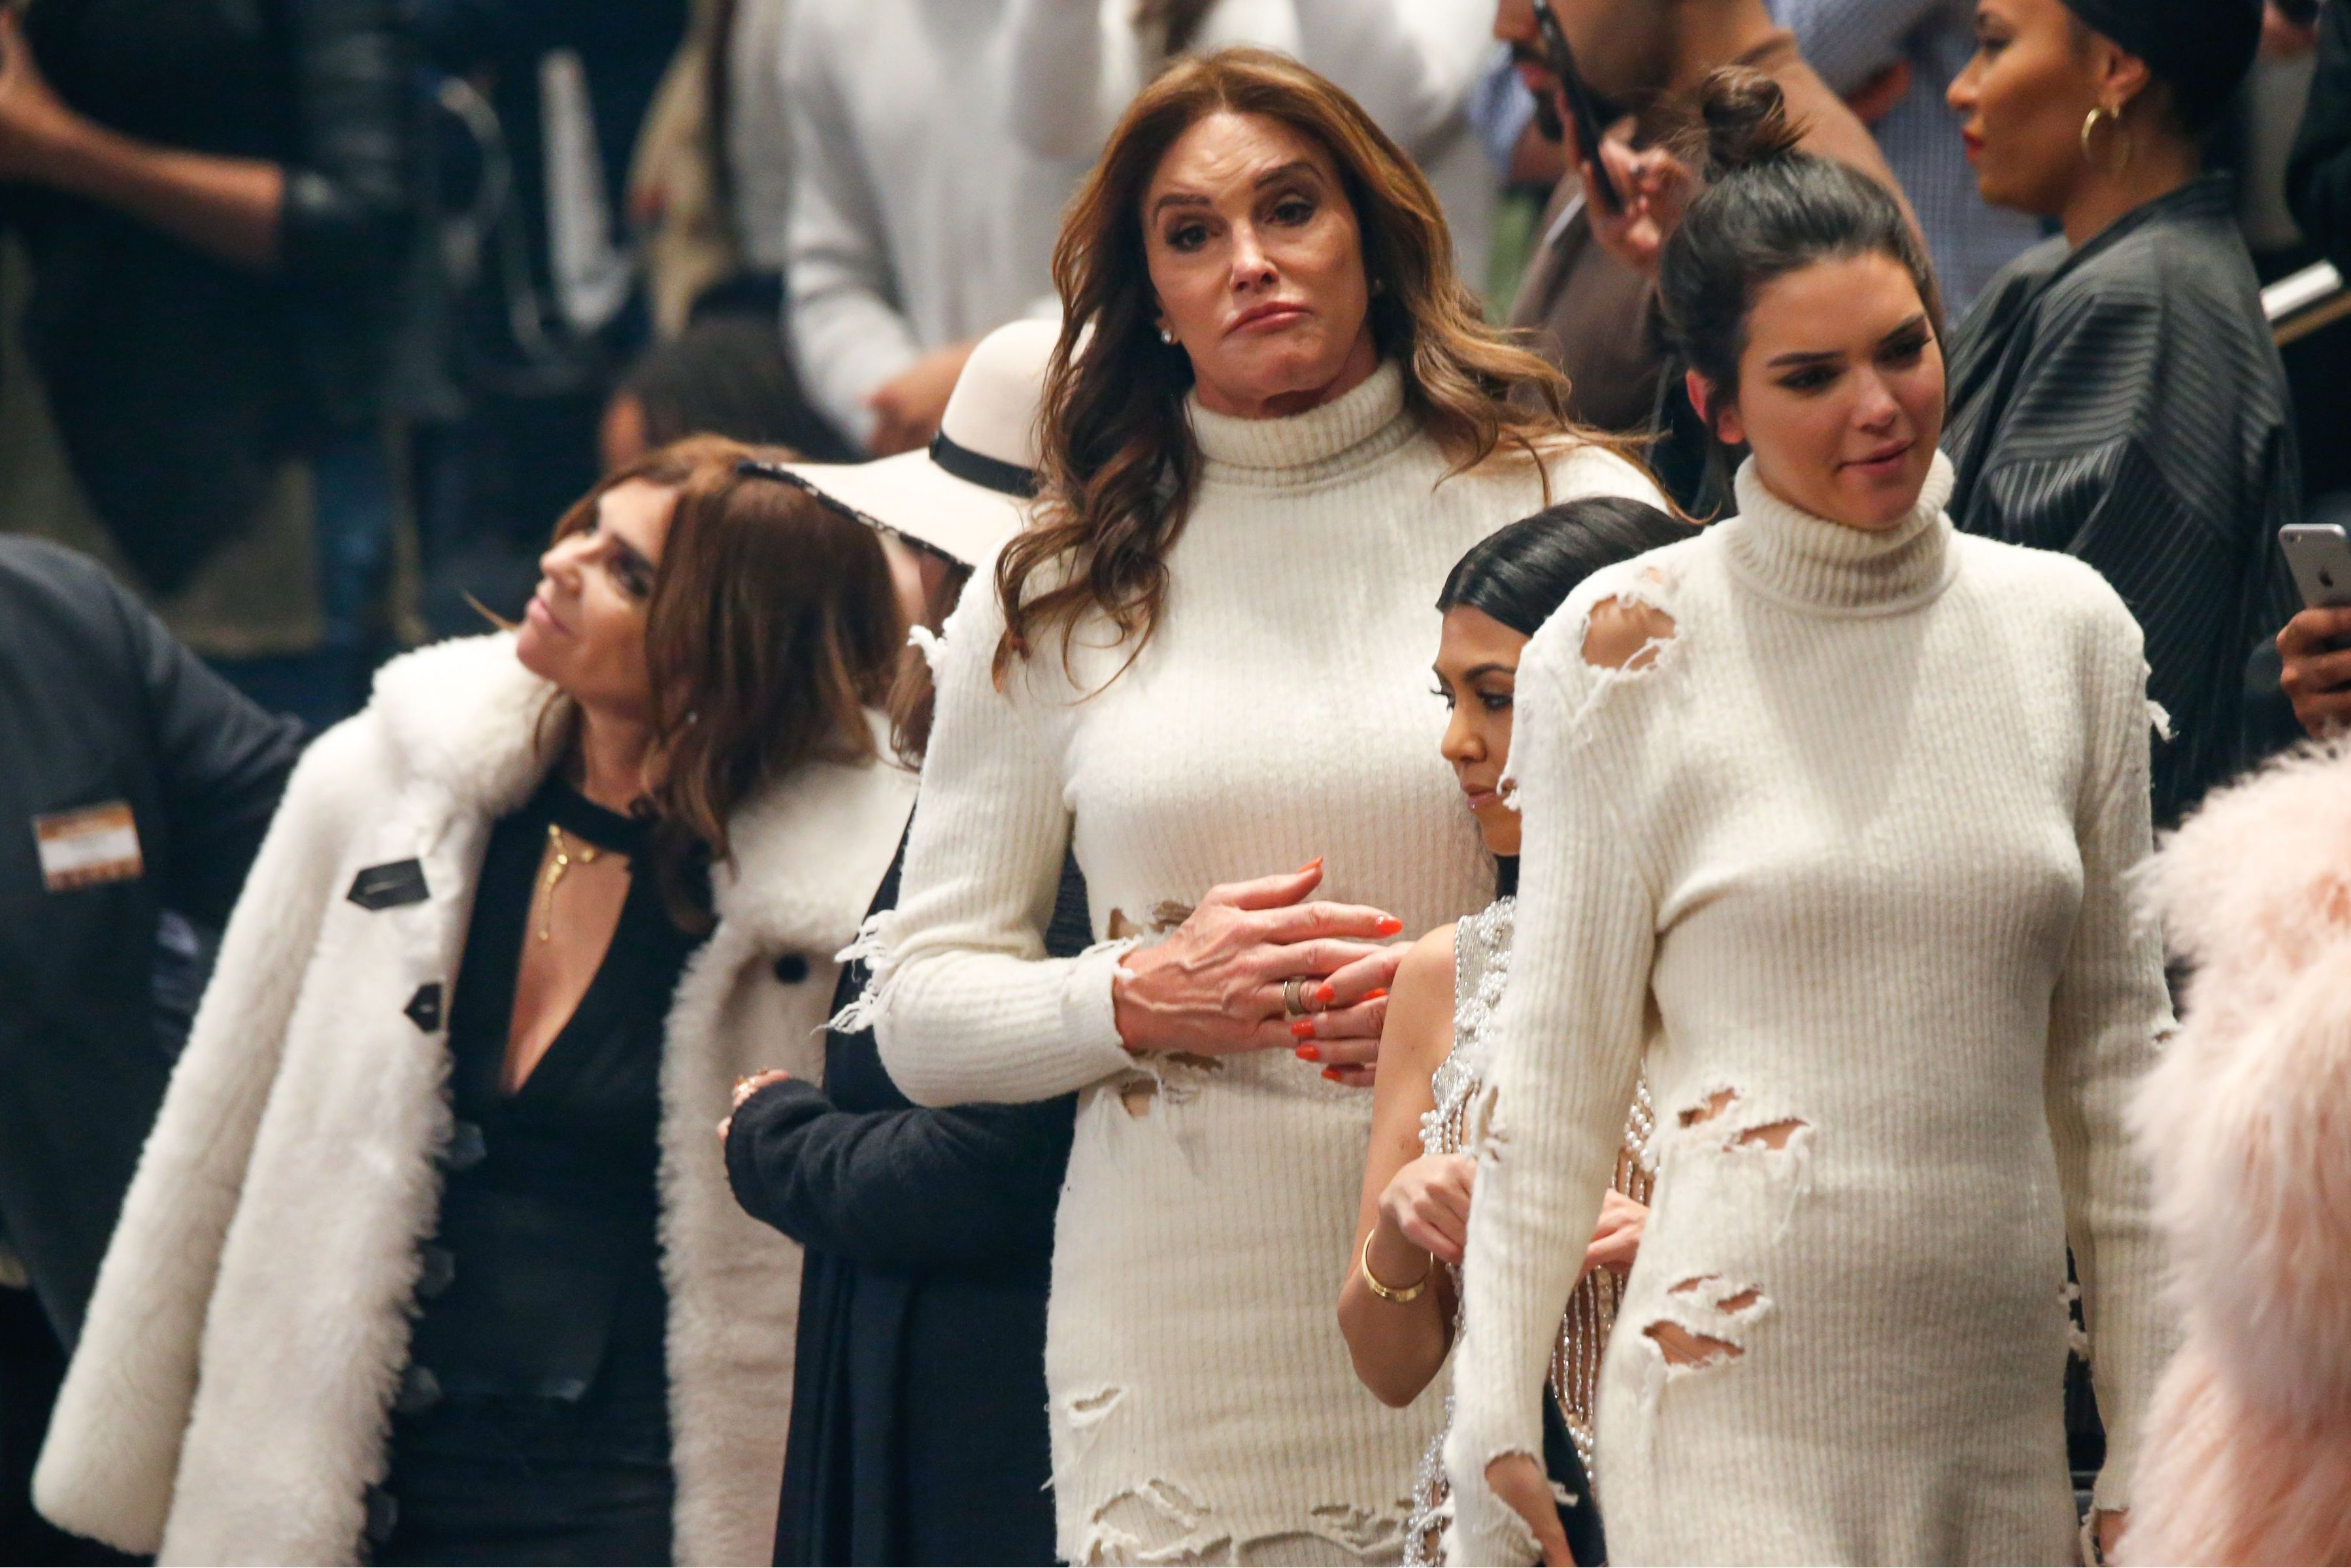 ec74663f3fa48 Caitlyn and Kendall Jenner wear the same dress to Kanye West s Yeezy  fashion show and new album launch